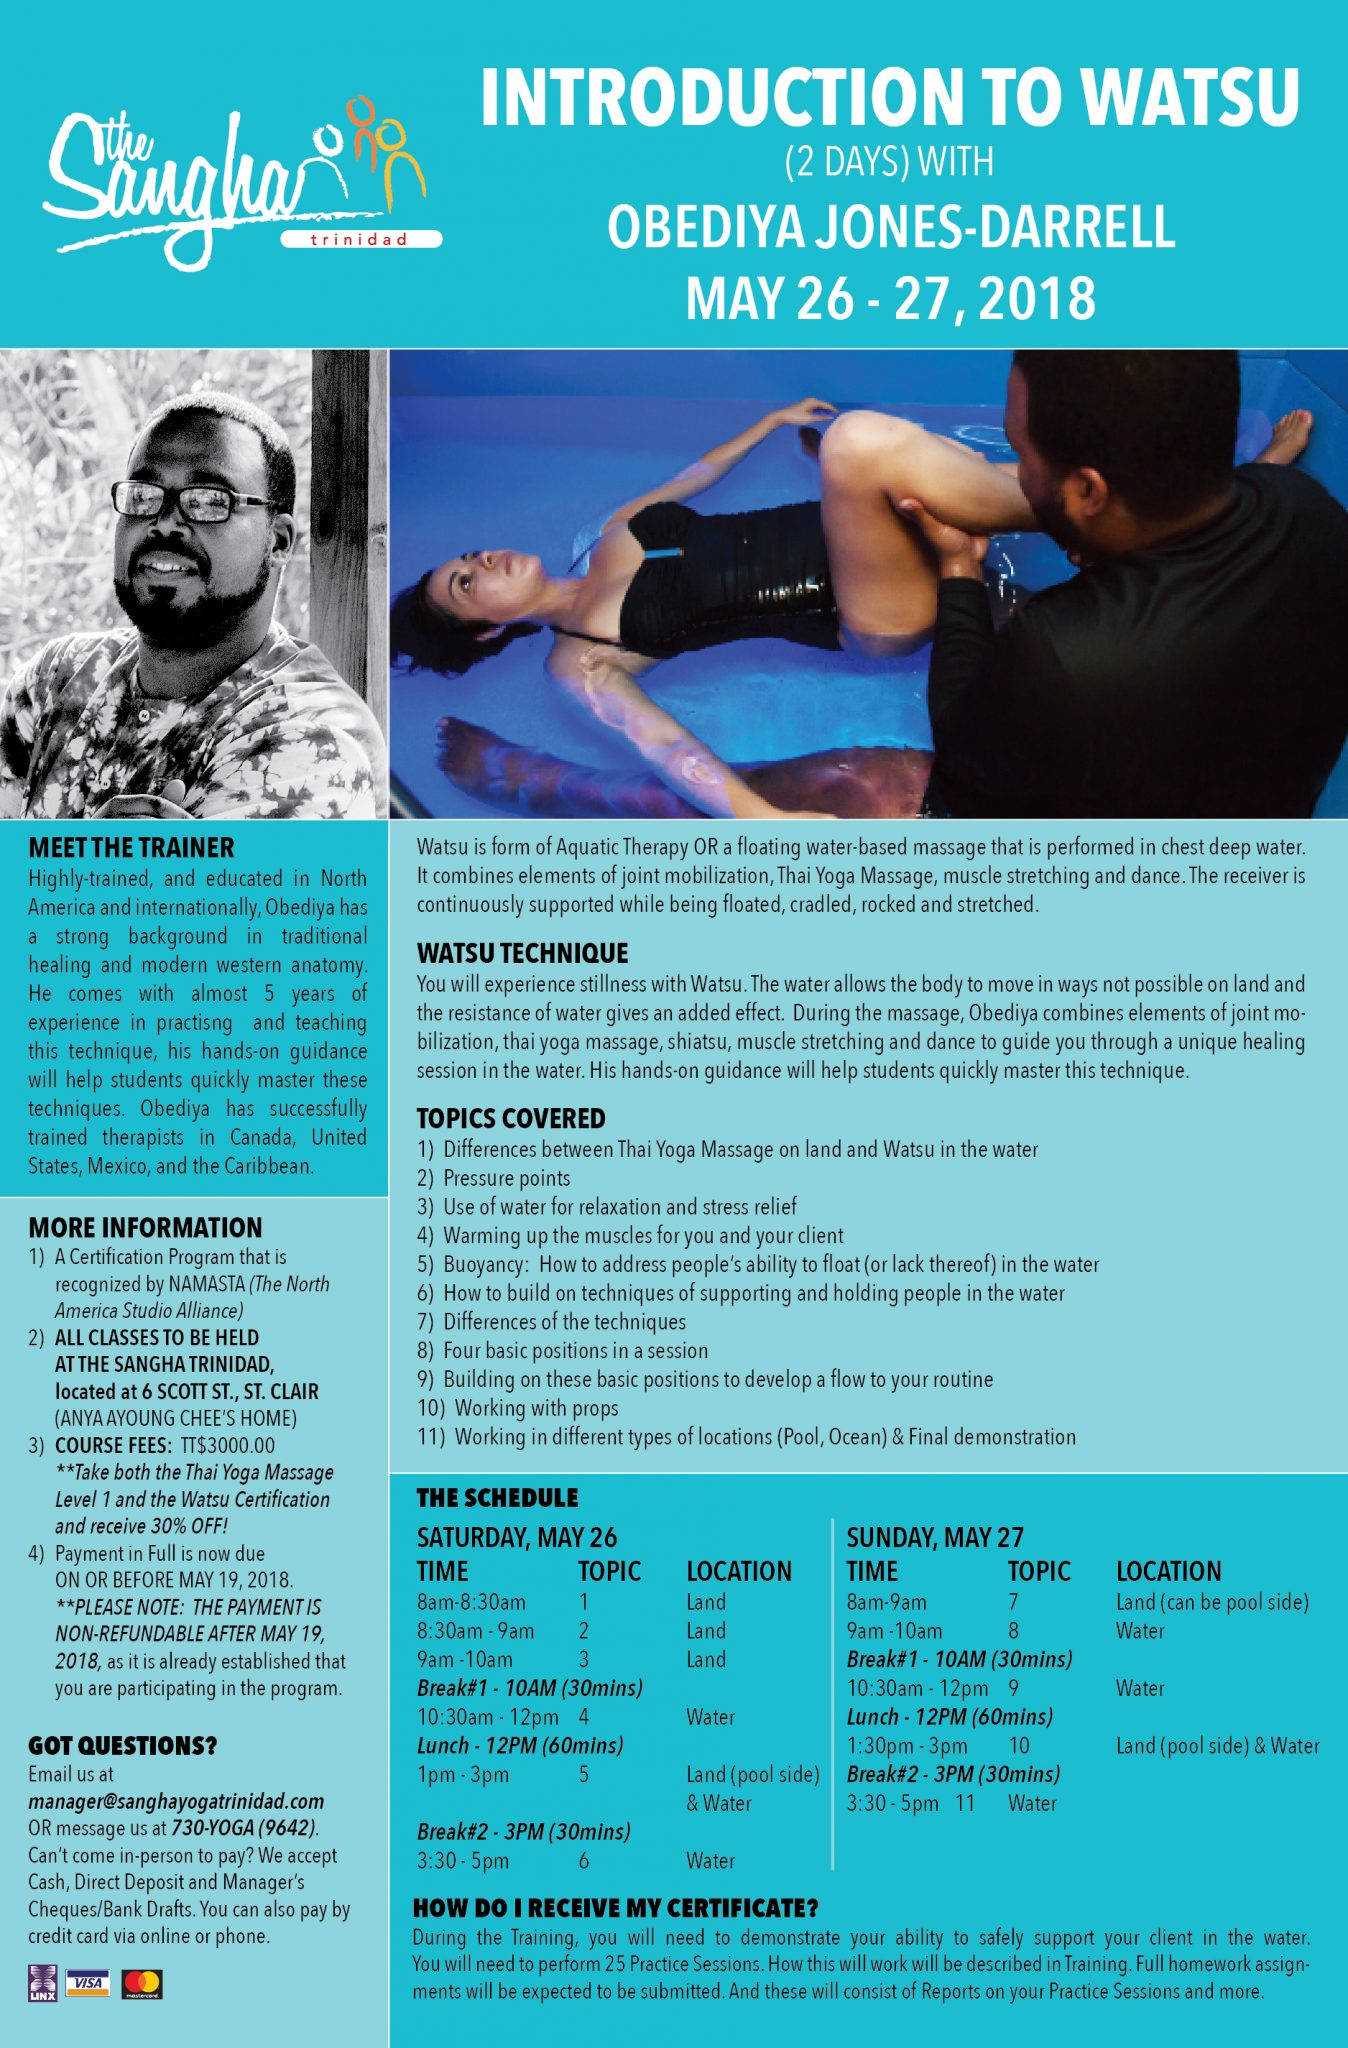 watsu therapy aquatic massage certification typical could looks